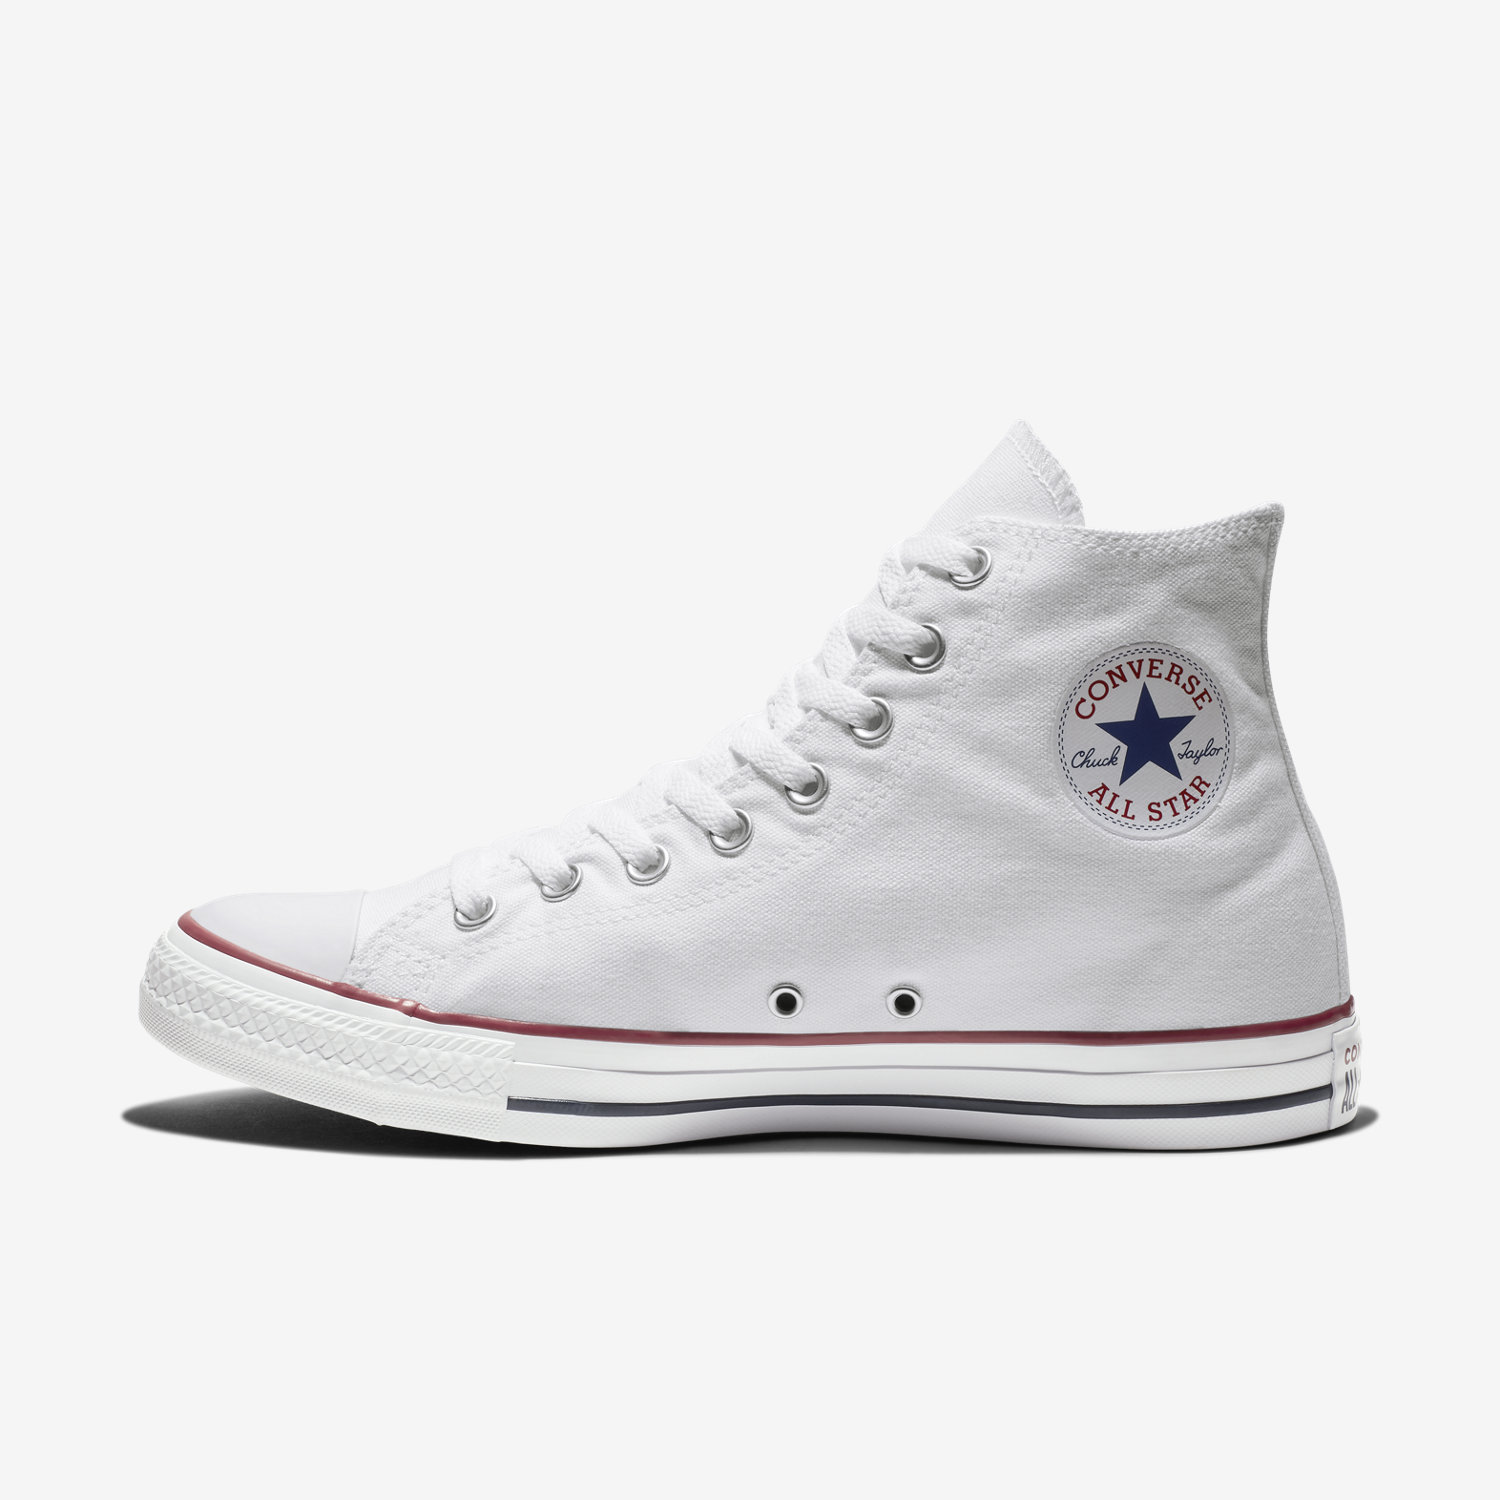 Converse Chuck Taylor All Star Hi Unisex Red White Scarpe da Ginnastica 9 UK